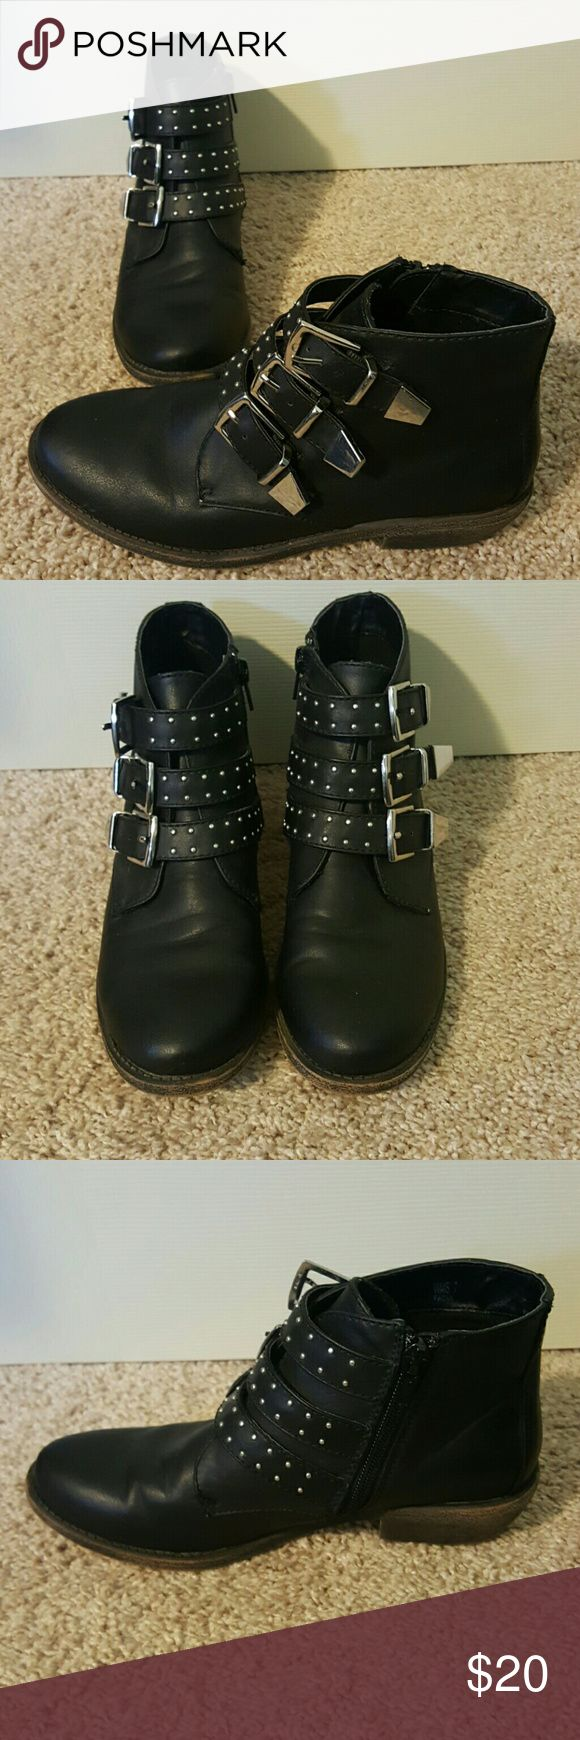 Report Black Buckle Ankle Boots Size 7 Studded Report Black Buckle Boots Size 7 Studded, Great Condition! Hardly Worn! Bundle 2 and save 20%!! Report Shoes Ankle Boots & Booties